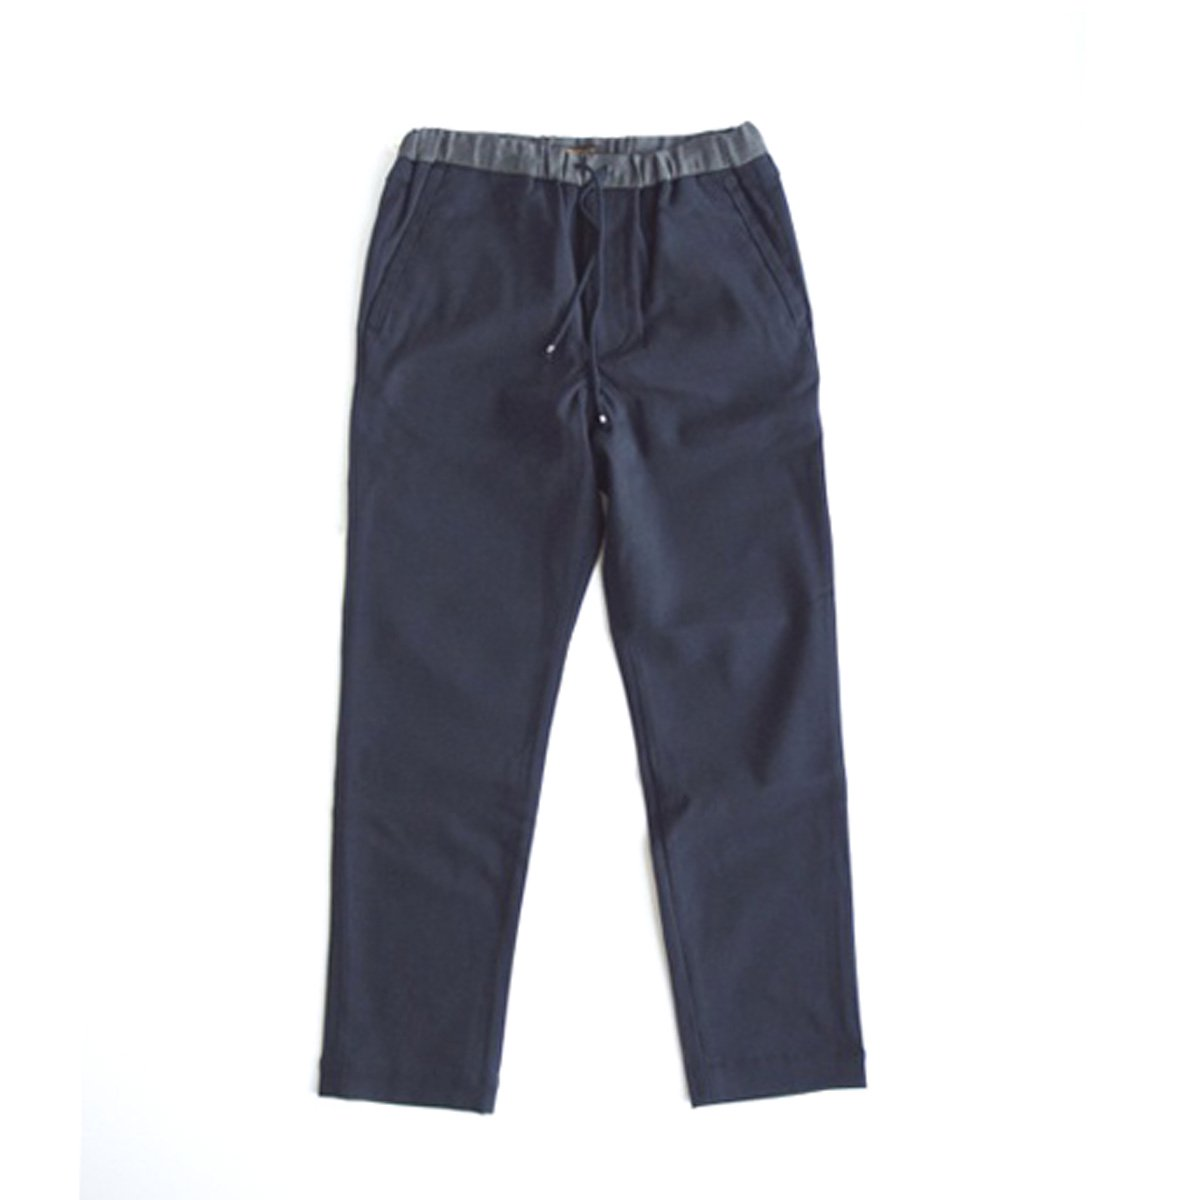 A VONTADE EASY PANTS (DK.NAVY)